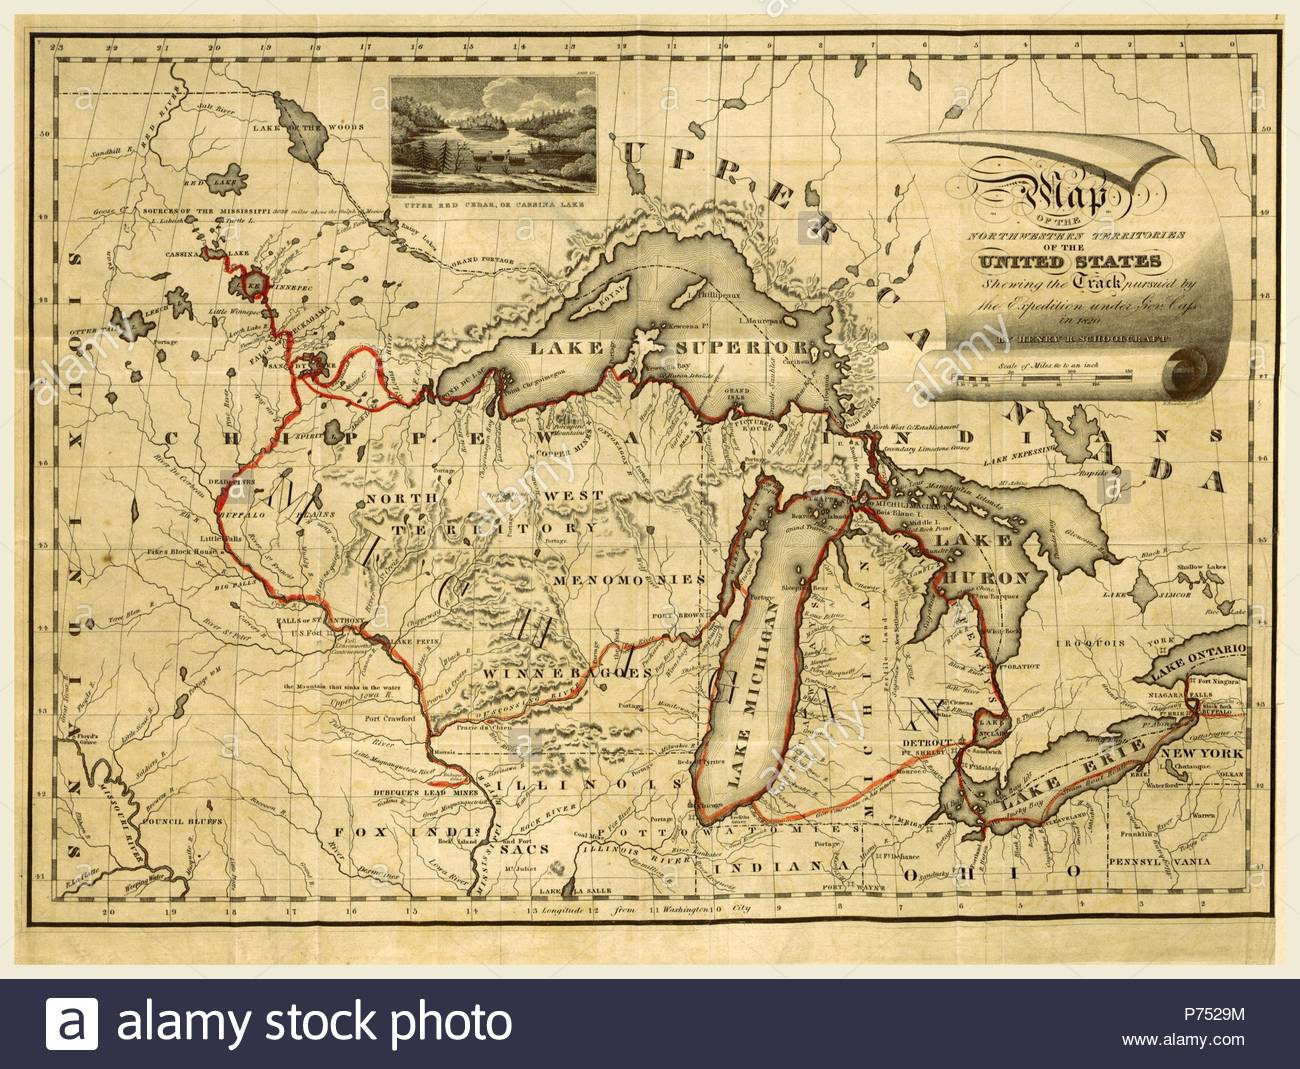 Map Of America 1820.Narrative Journal Of Travels Through The North Western Regions Of